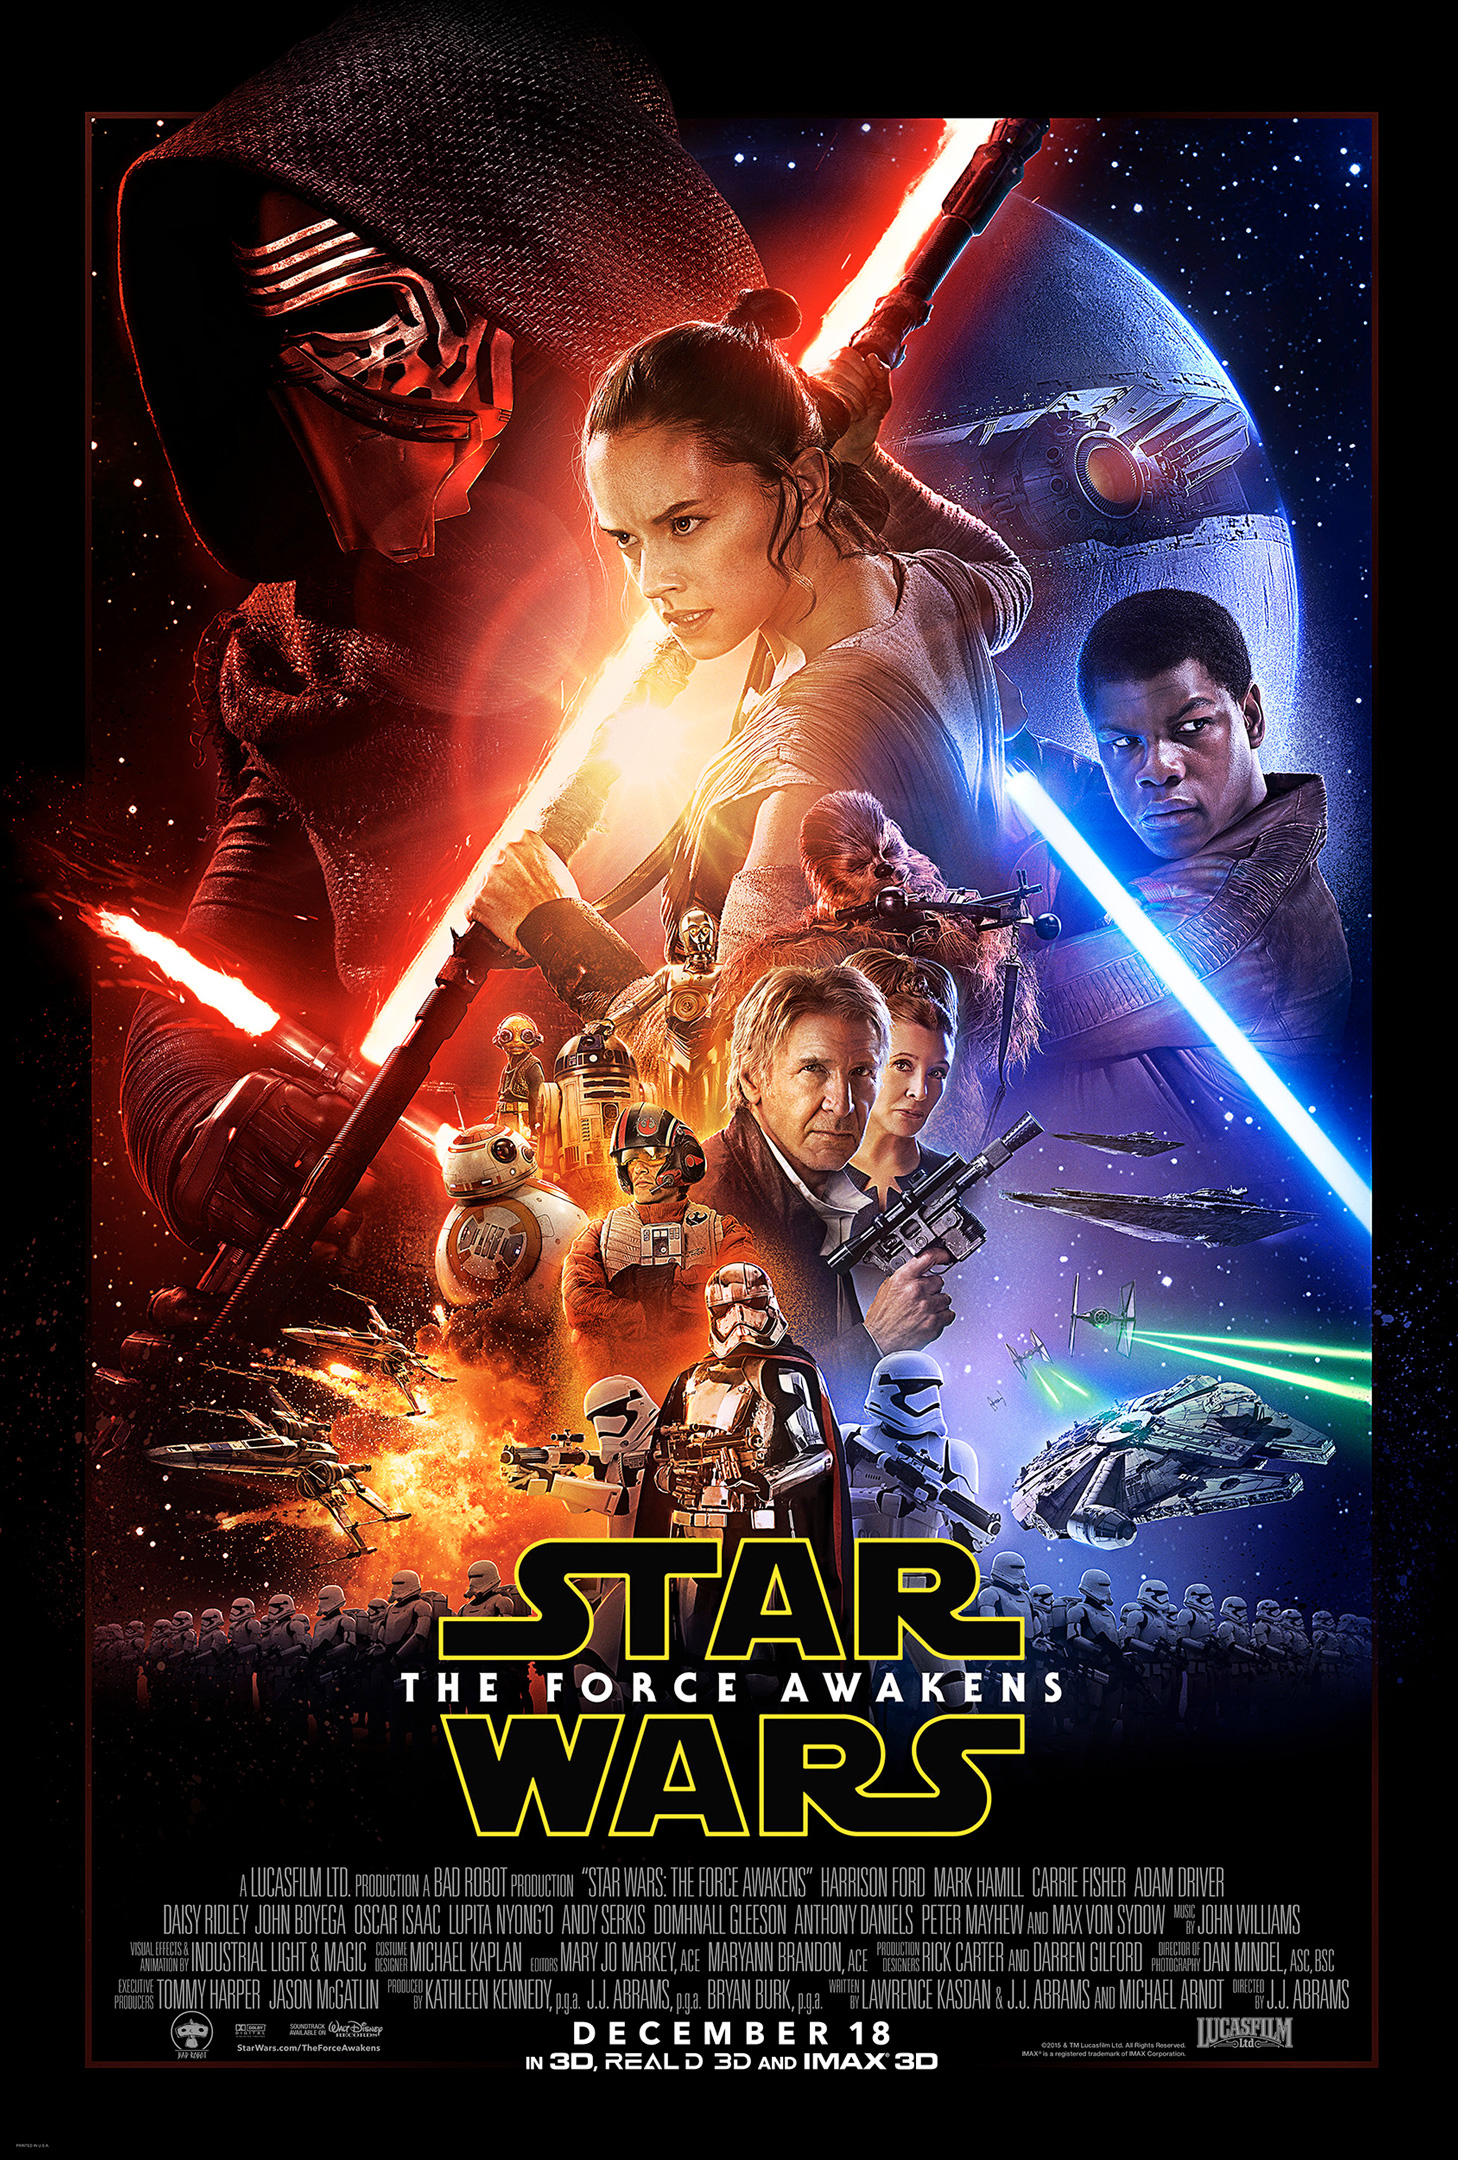 The official theatrical poster for Star Wars: The Force Awakens